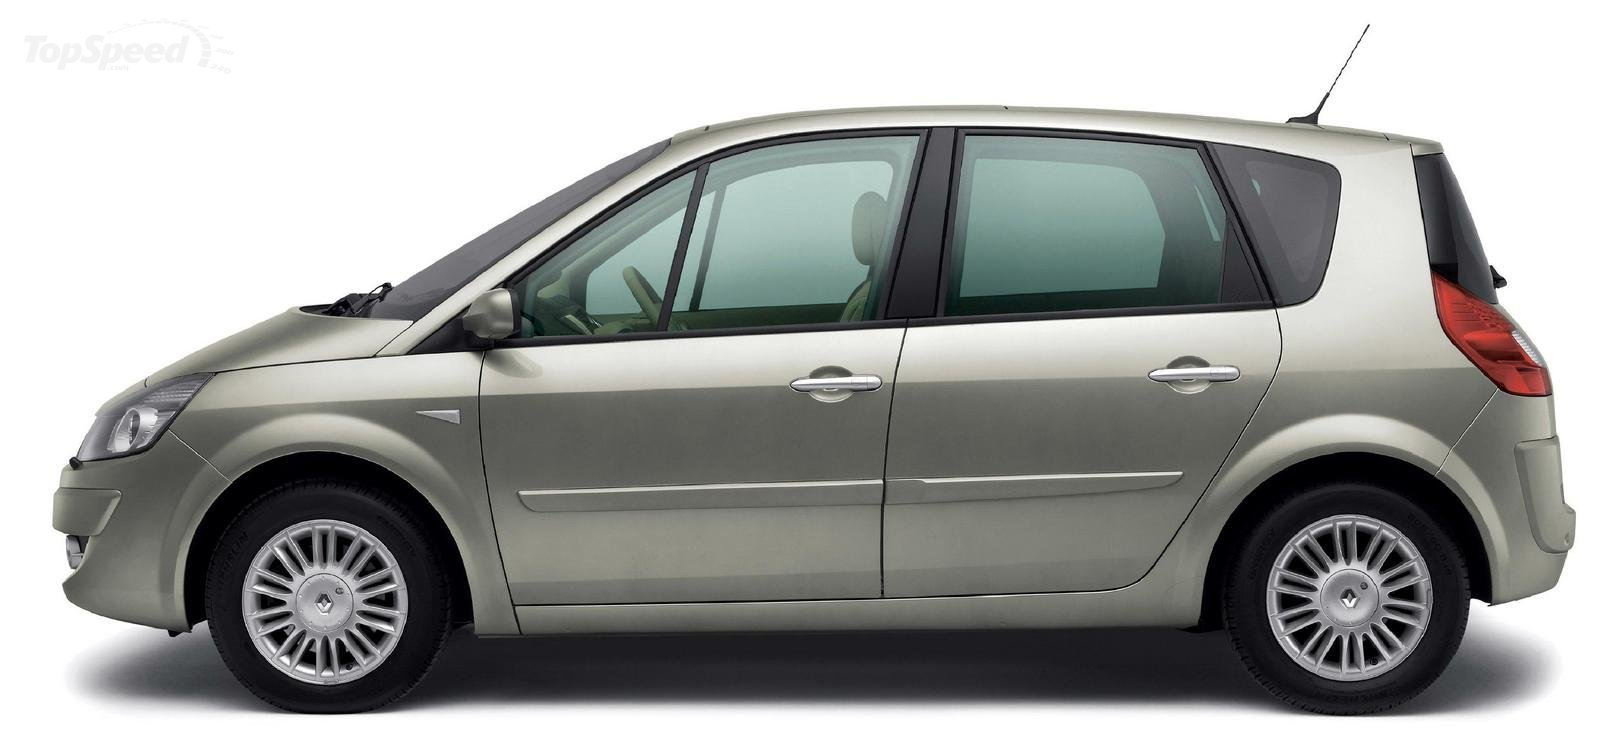 2004 Renault Scenic ii – pictures, information and specs - Auto-Database.com